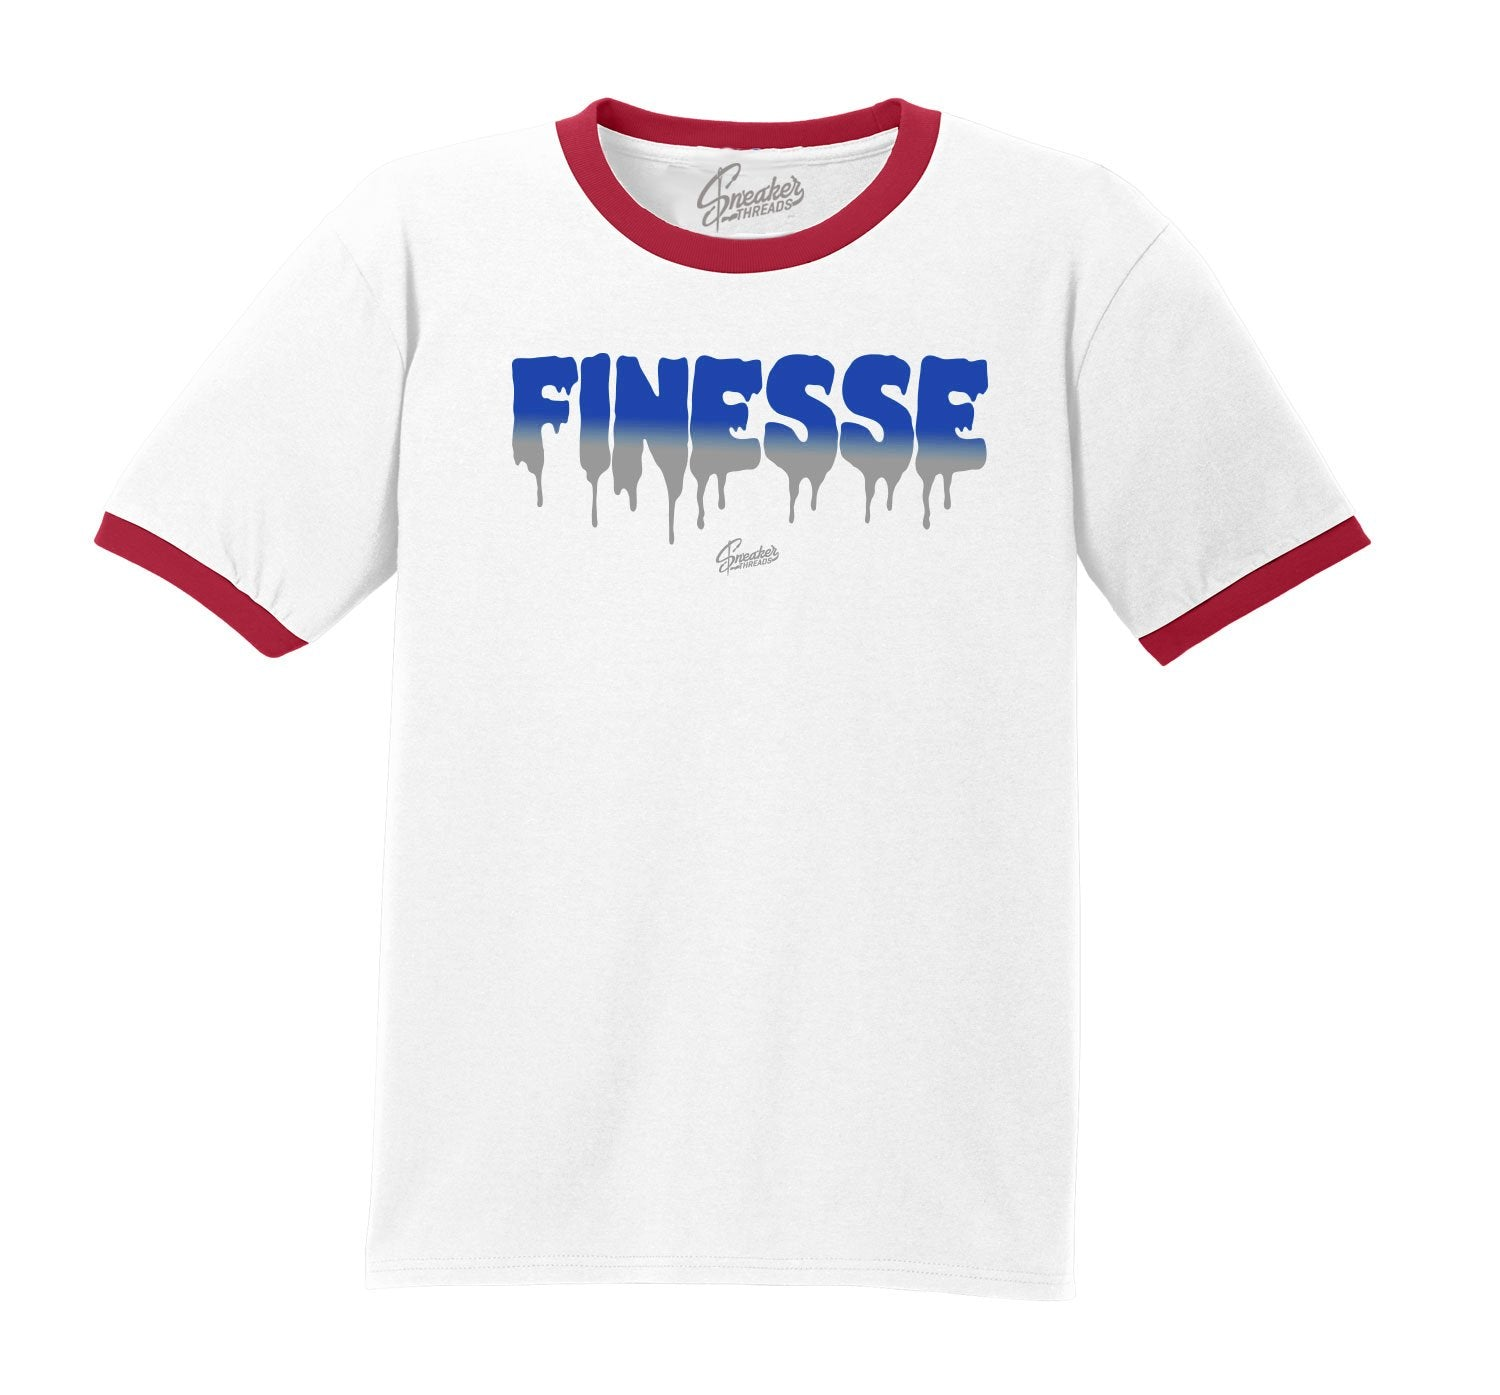 Jordan 4 Loyal Blue Finesse Dopest shirt to stay fresh